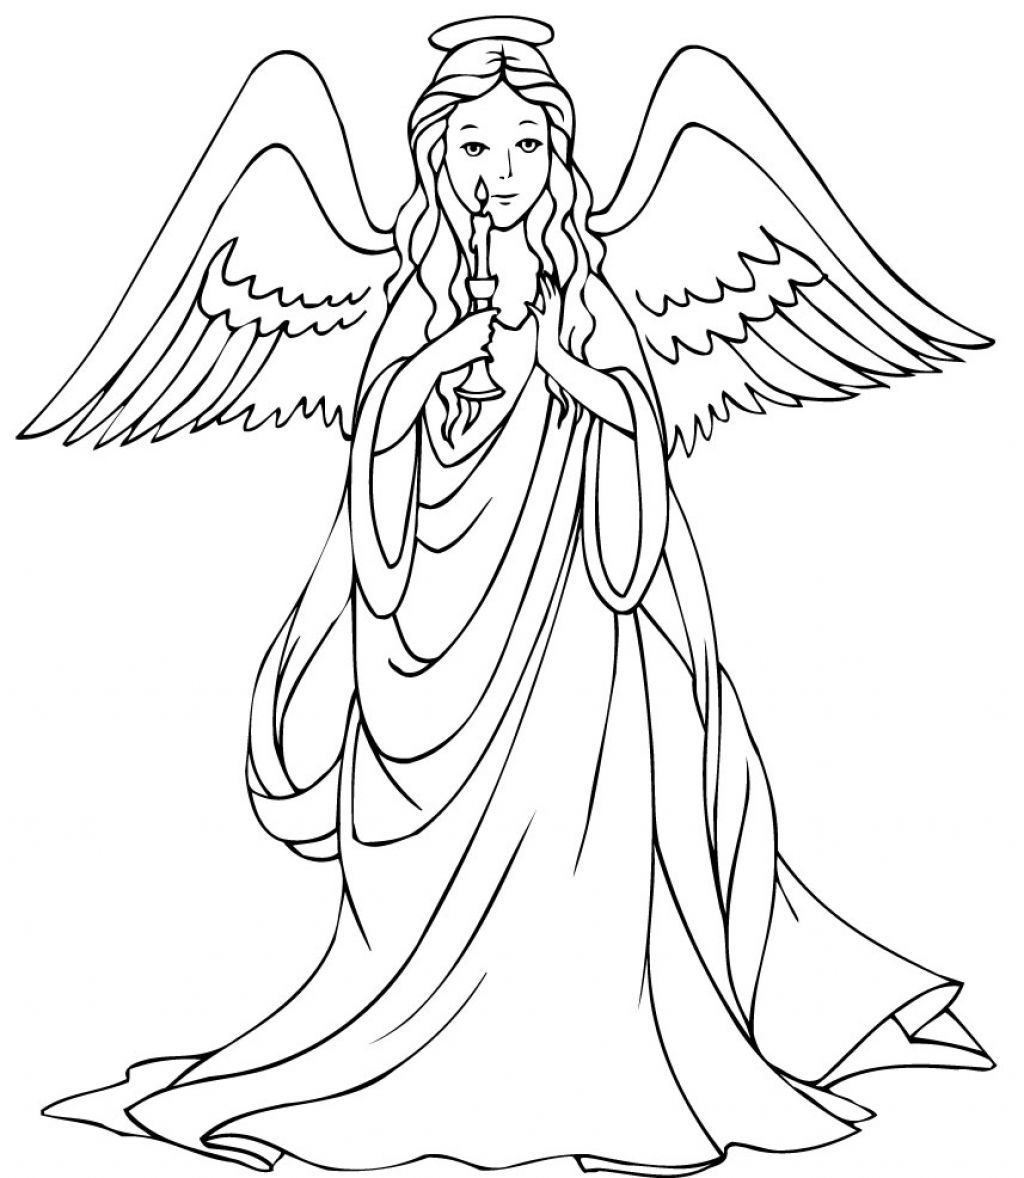 angel Coloring Pages | Coloring Pages of Christmas Angel With Candle ...